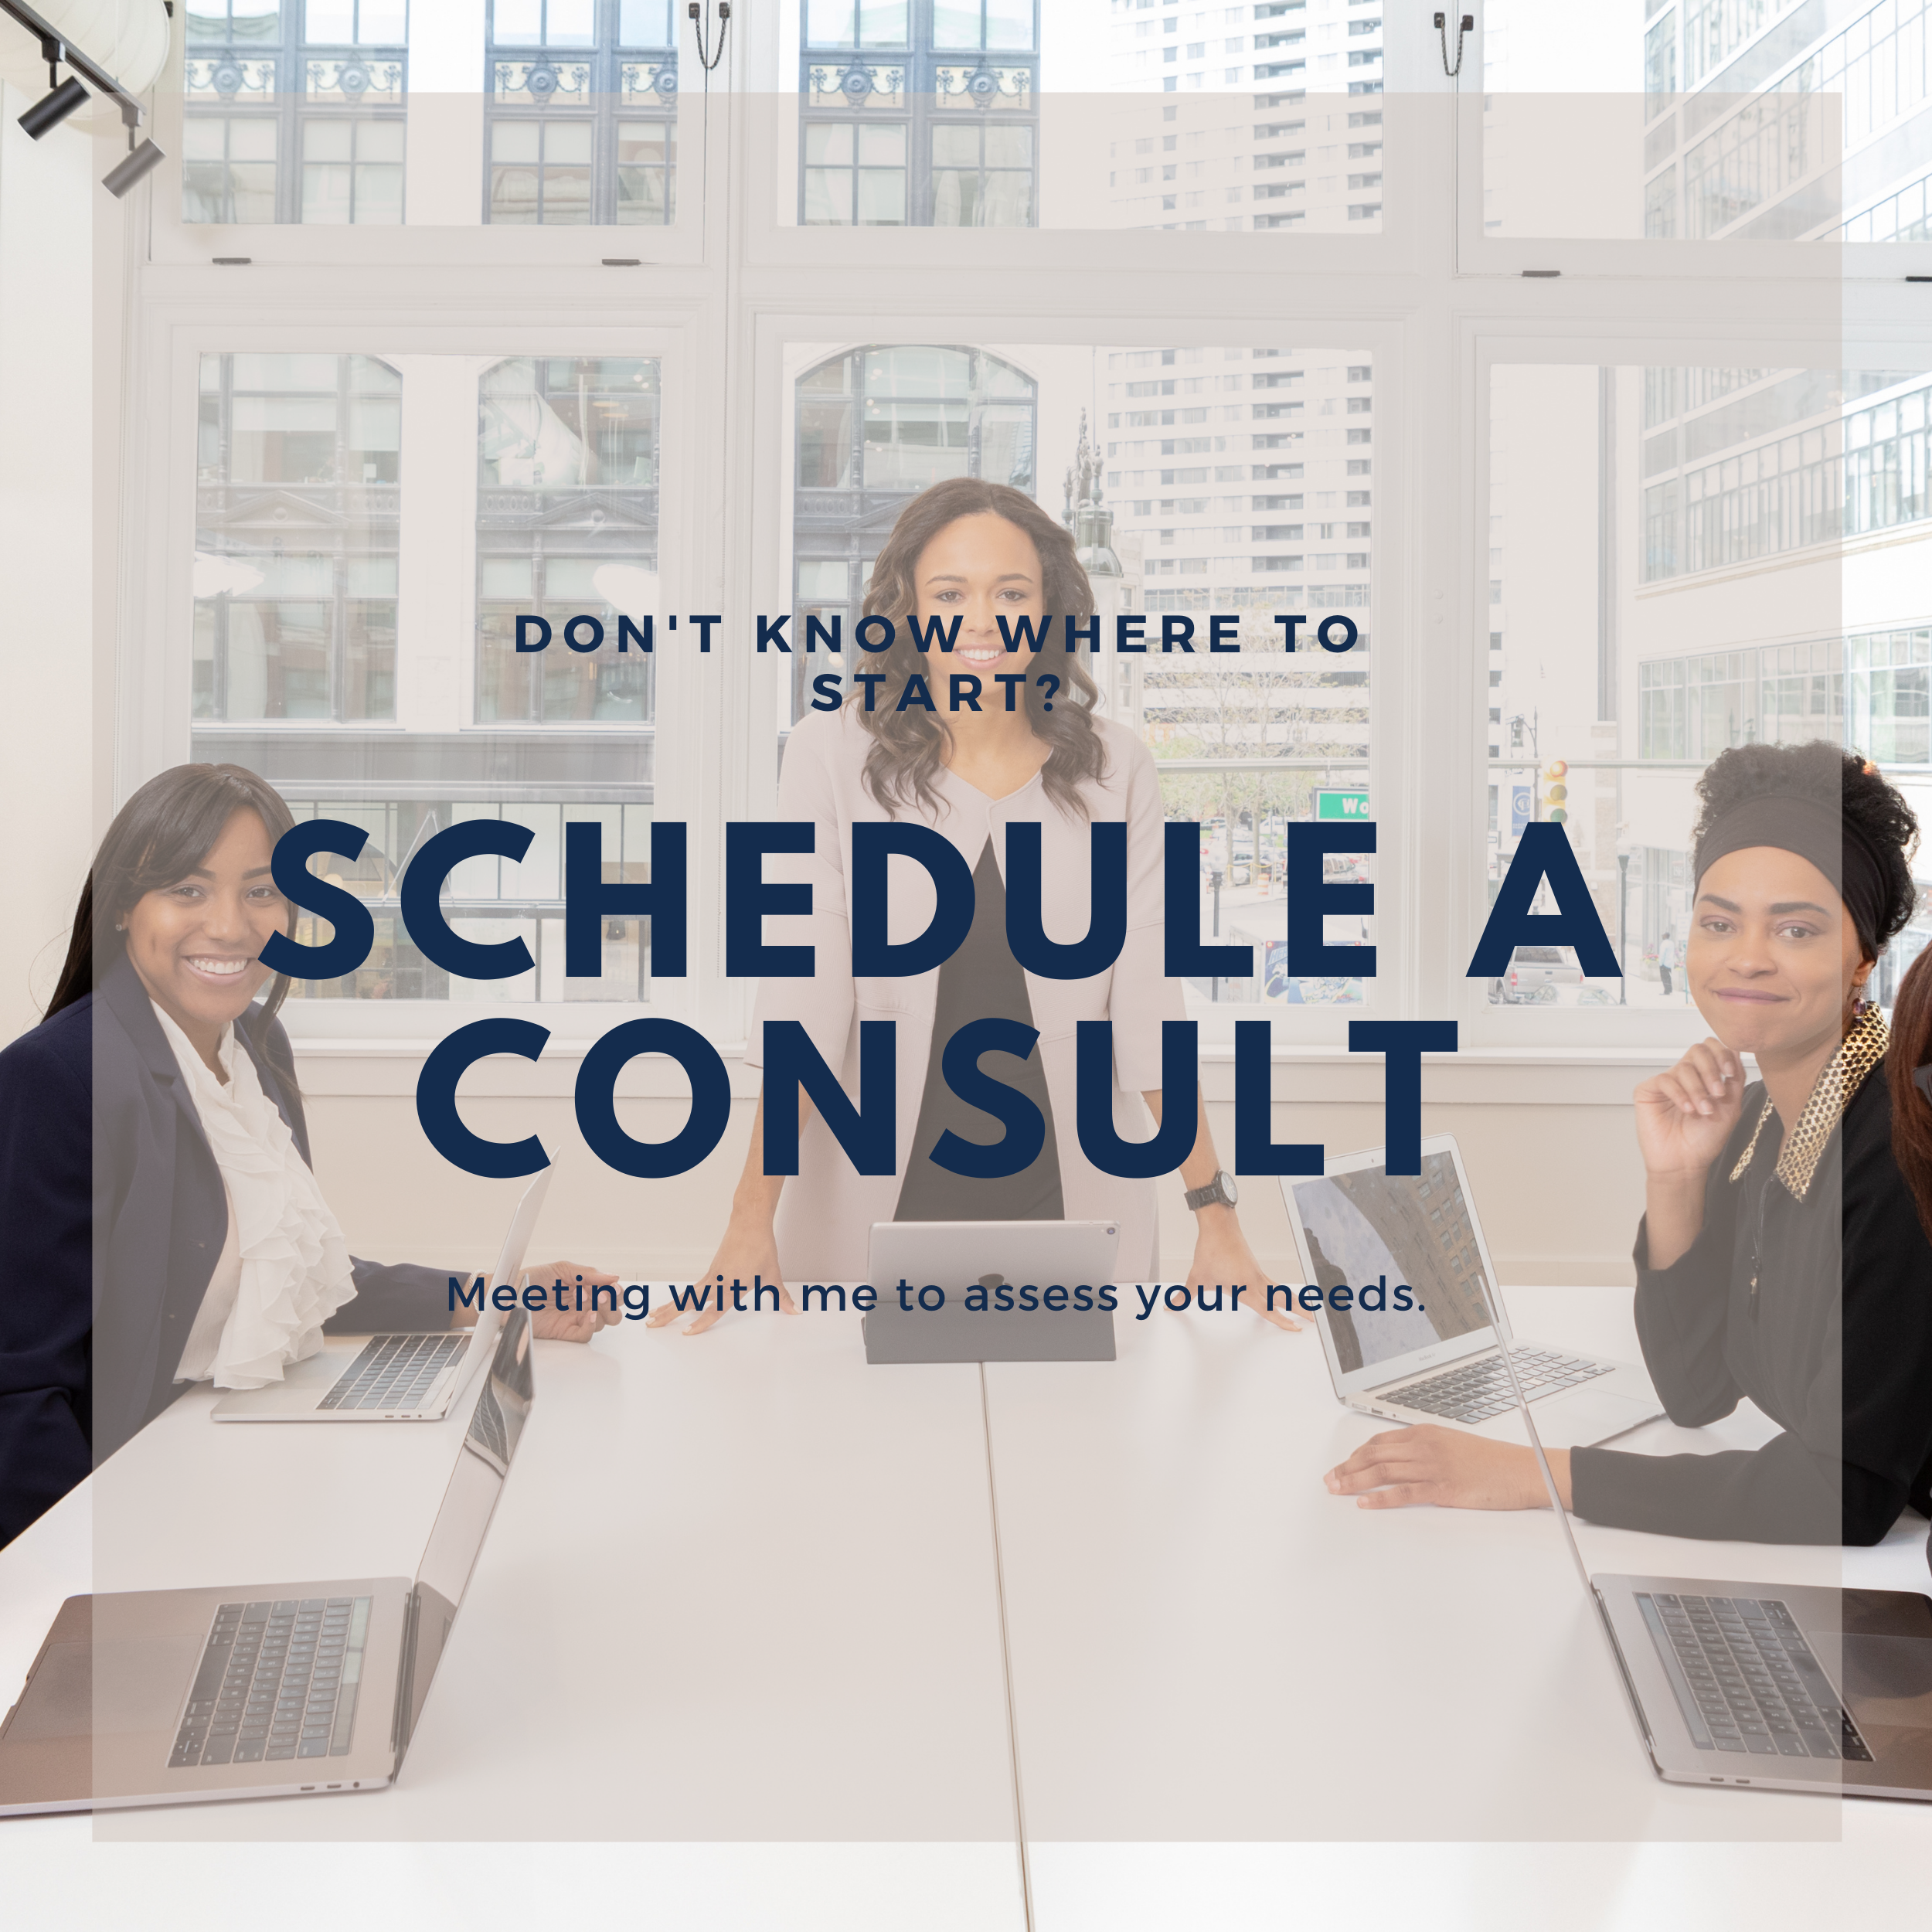 Contact Publicists, Crisis Managers and Marketing experts in Washington DC. Schedule a consult today